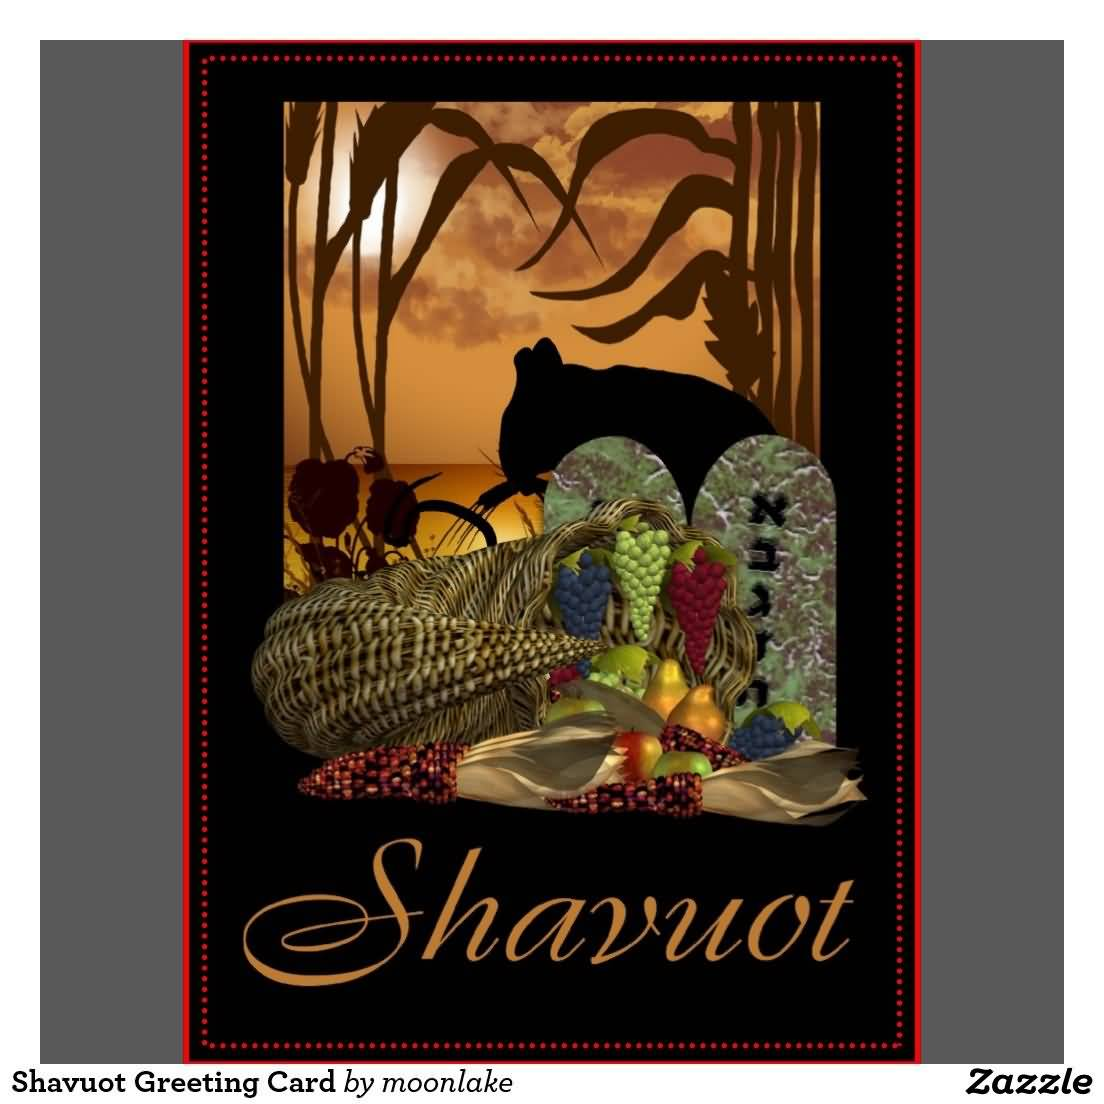 Shavuot 2017 Greeting Card